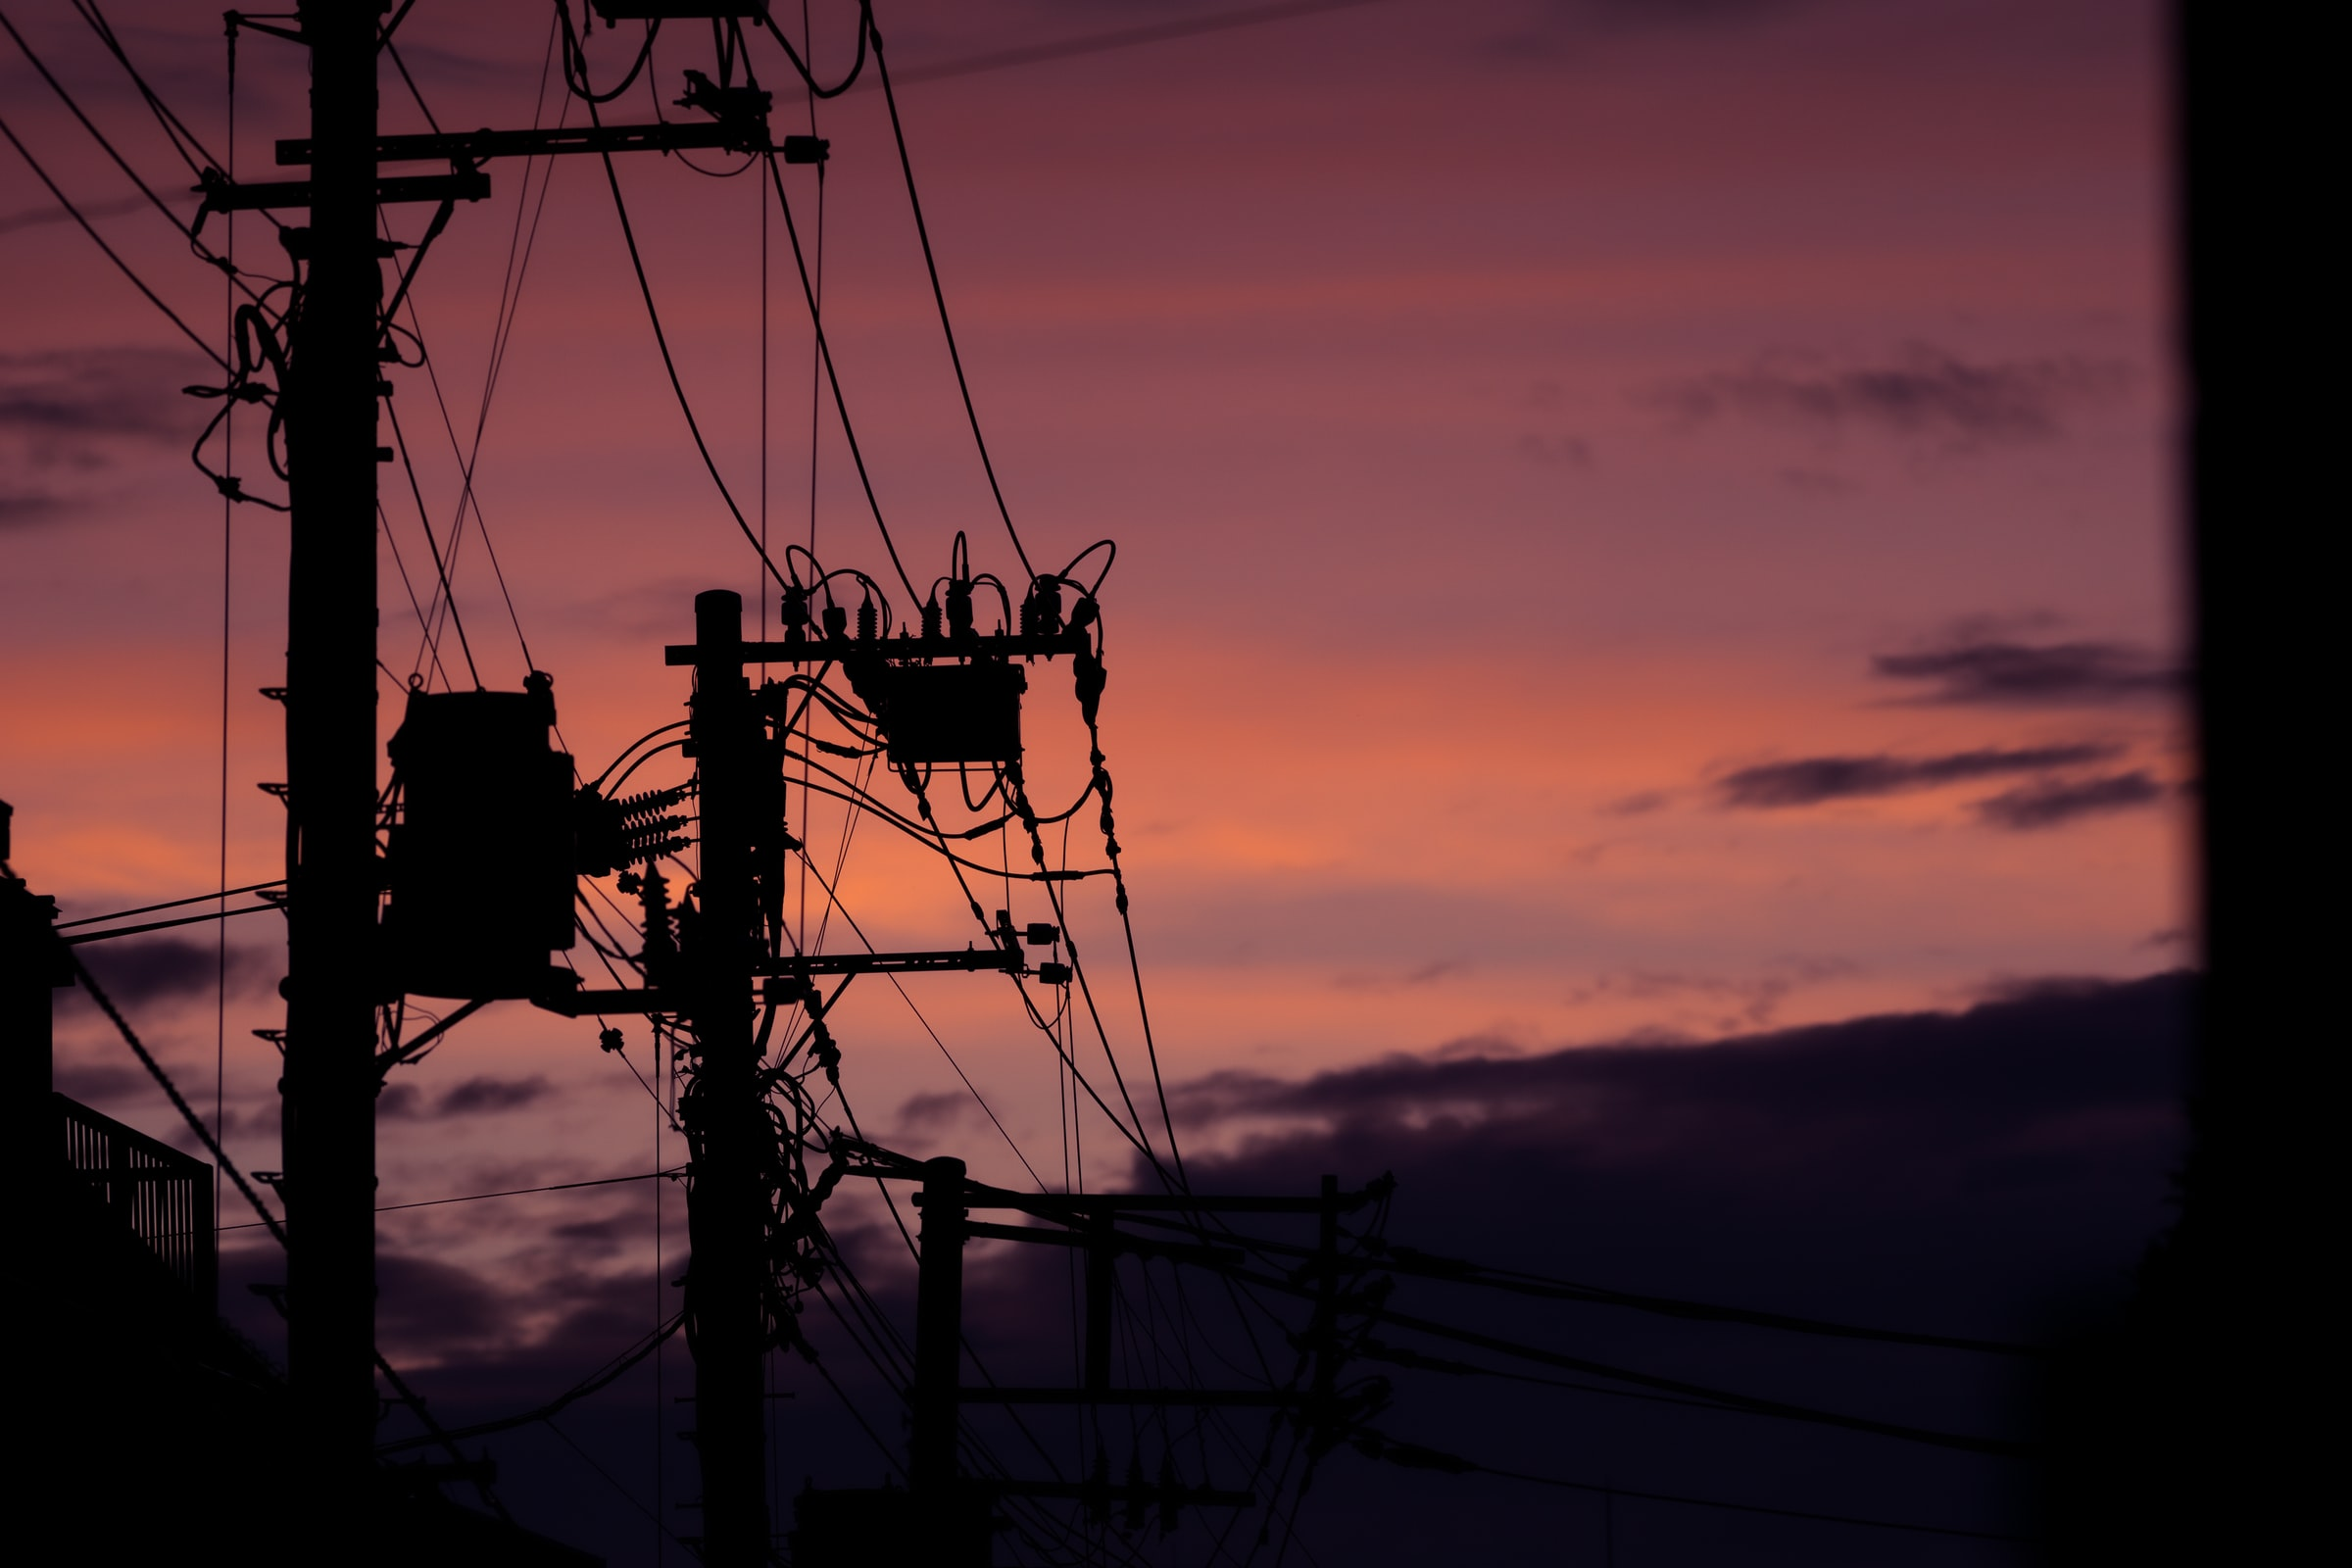 Who is profiting from the power outages?